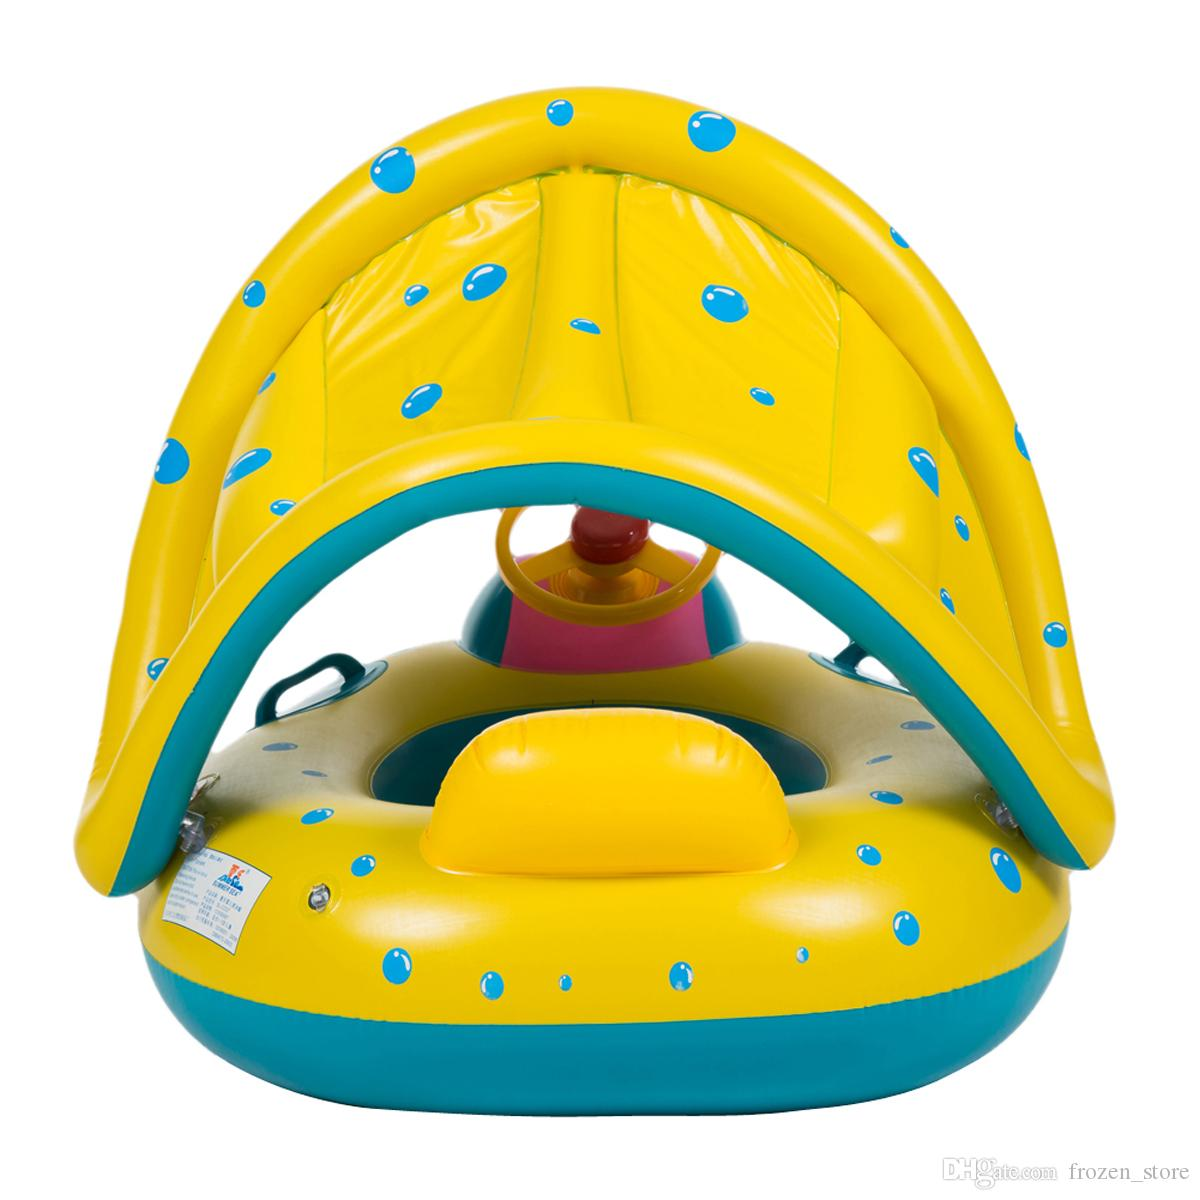 Product details of new inflatable floating swim ring kids children toy - Portable Summer Baby Kids Safety Swimming Ring Inflatable Swan Swim Float Water Fun Pool Toys Swim Ring Seat Boat Water Sport 2110113 Children Swimming